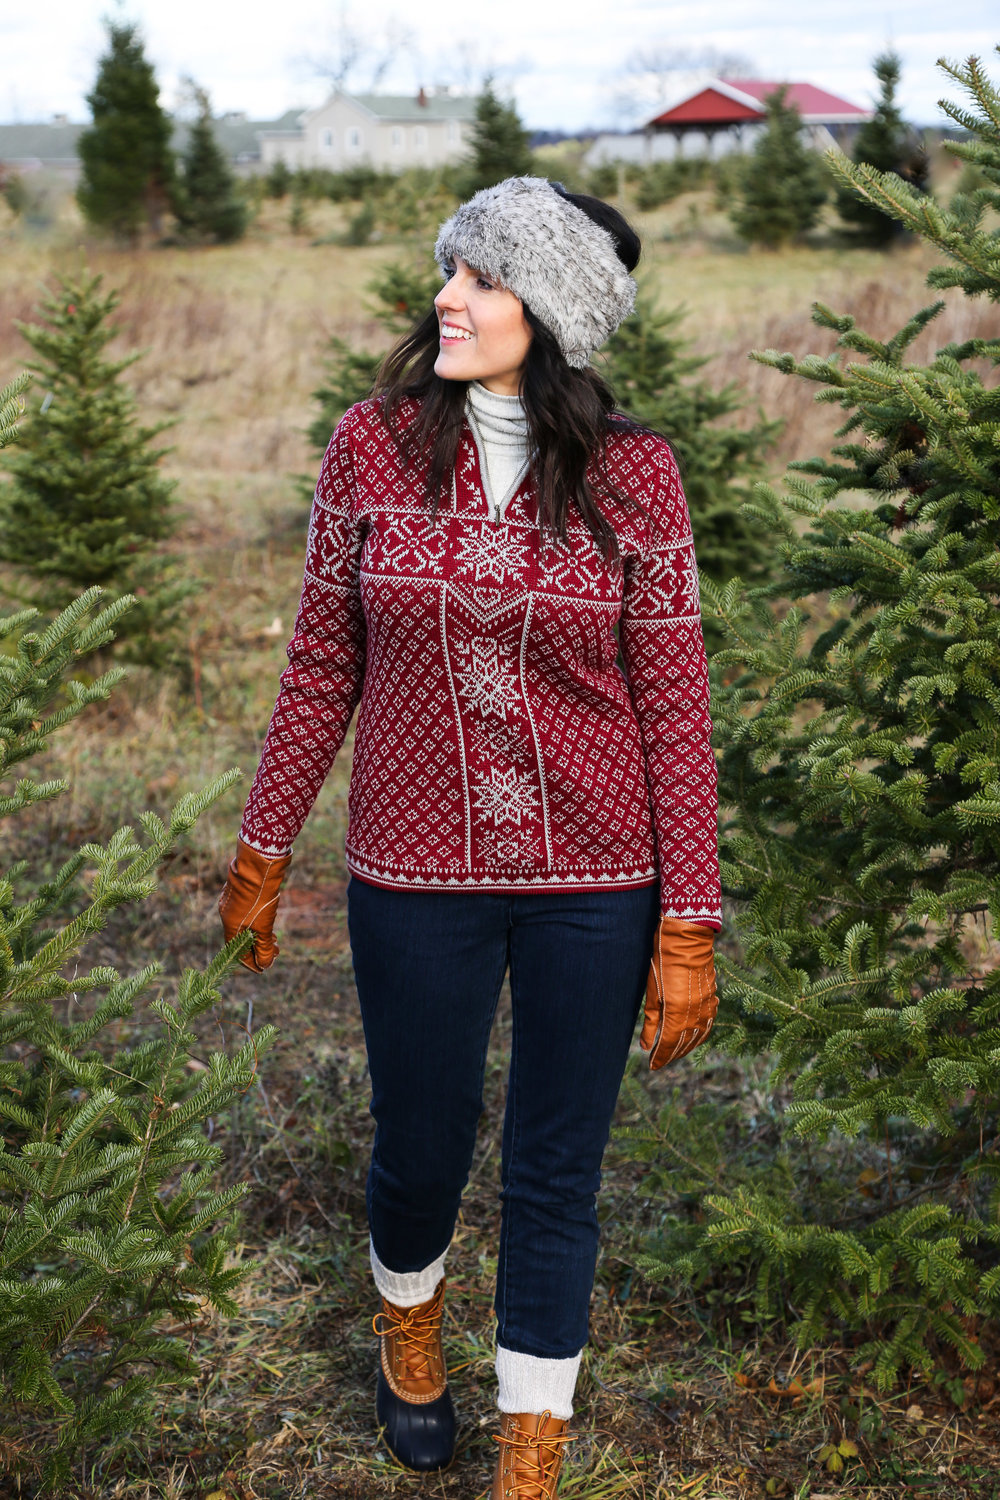 TREE CUTTING OUTFIT - ...but would also be great for cozying up in a cabin